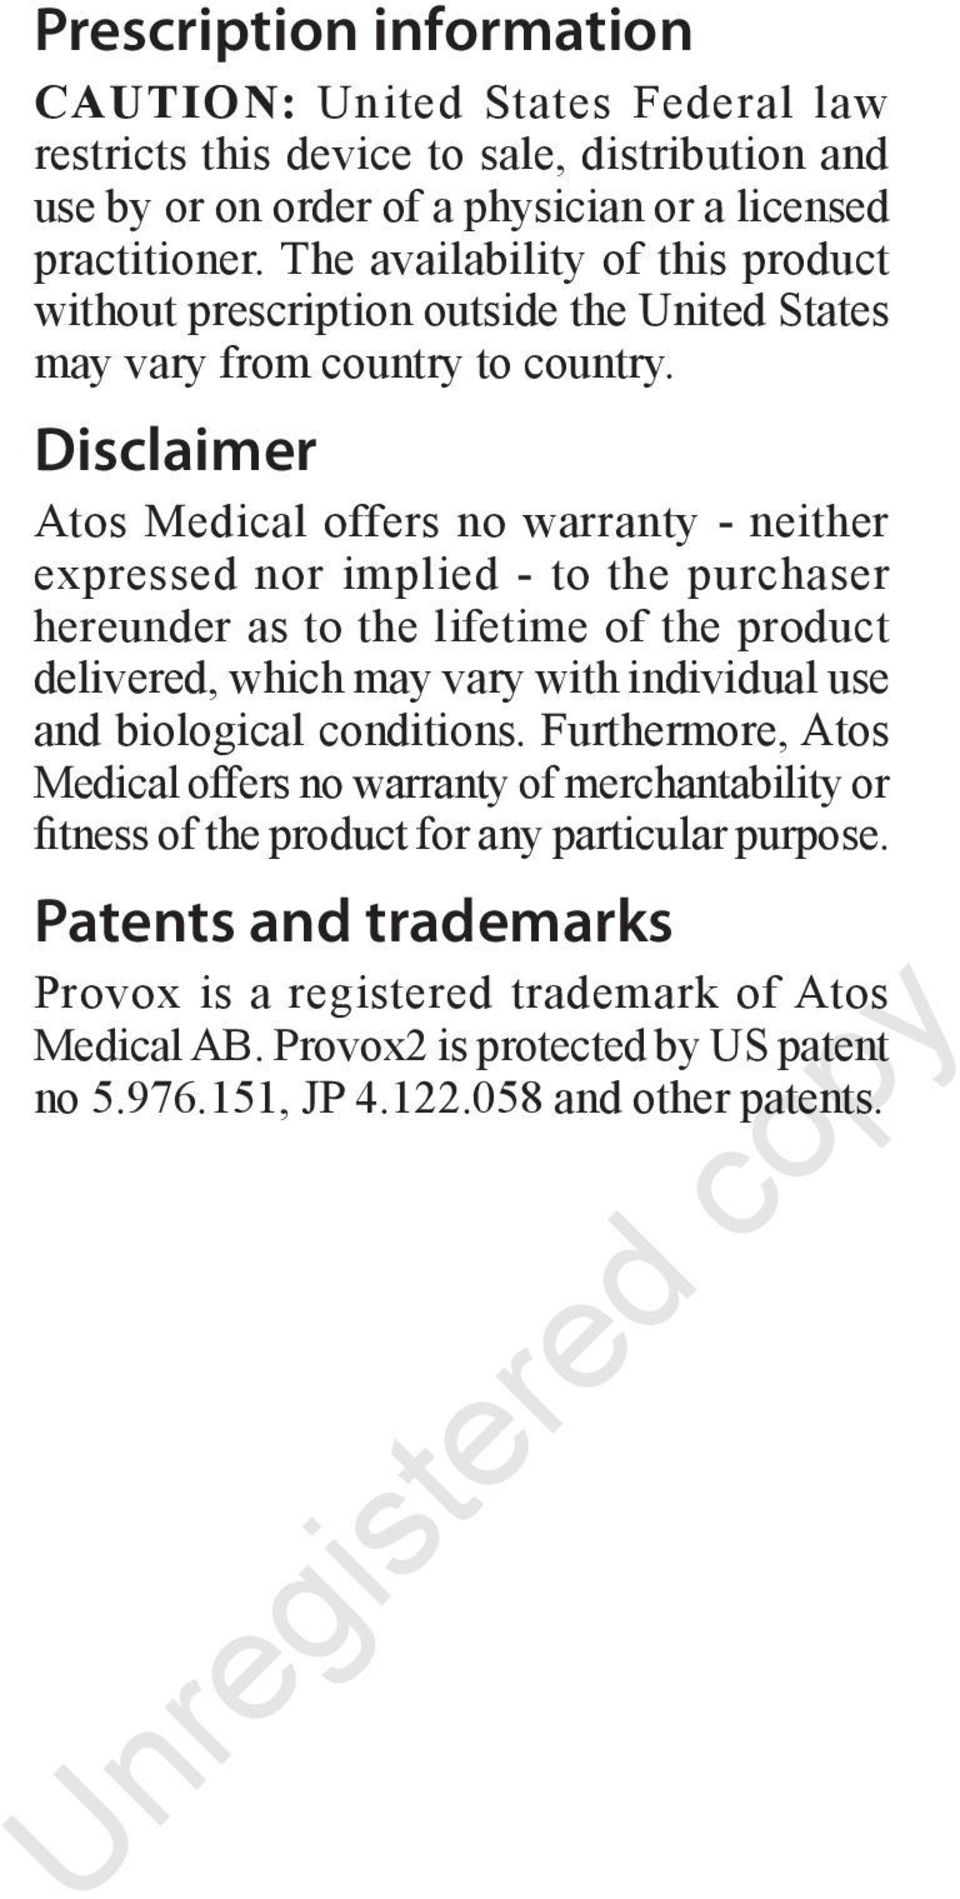 Disclaimer Atos Medical offers no warranty - neither expressed nor implied - to the purchaser hereunder as to the lifetime of the product delivered, which may vary with individual use and